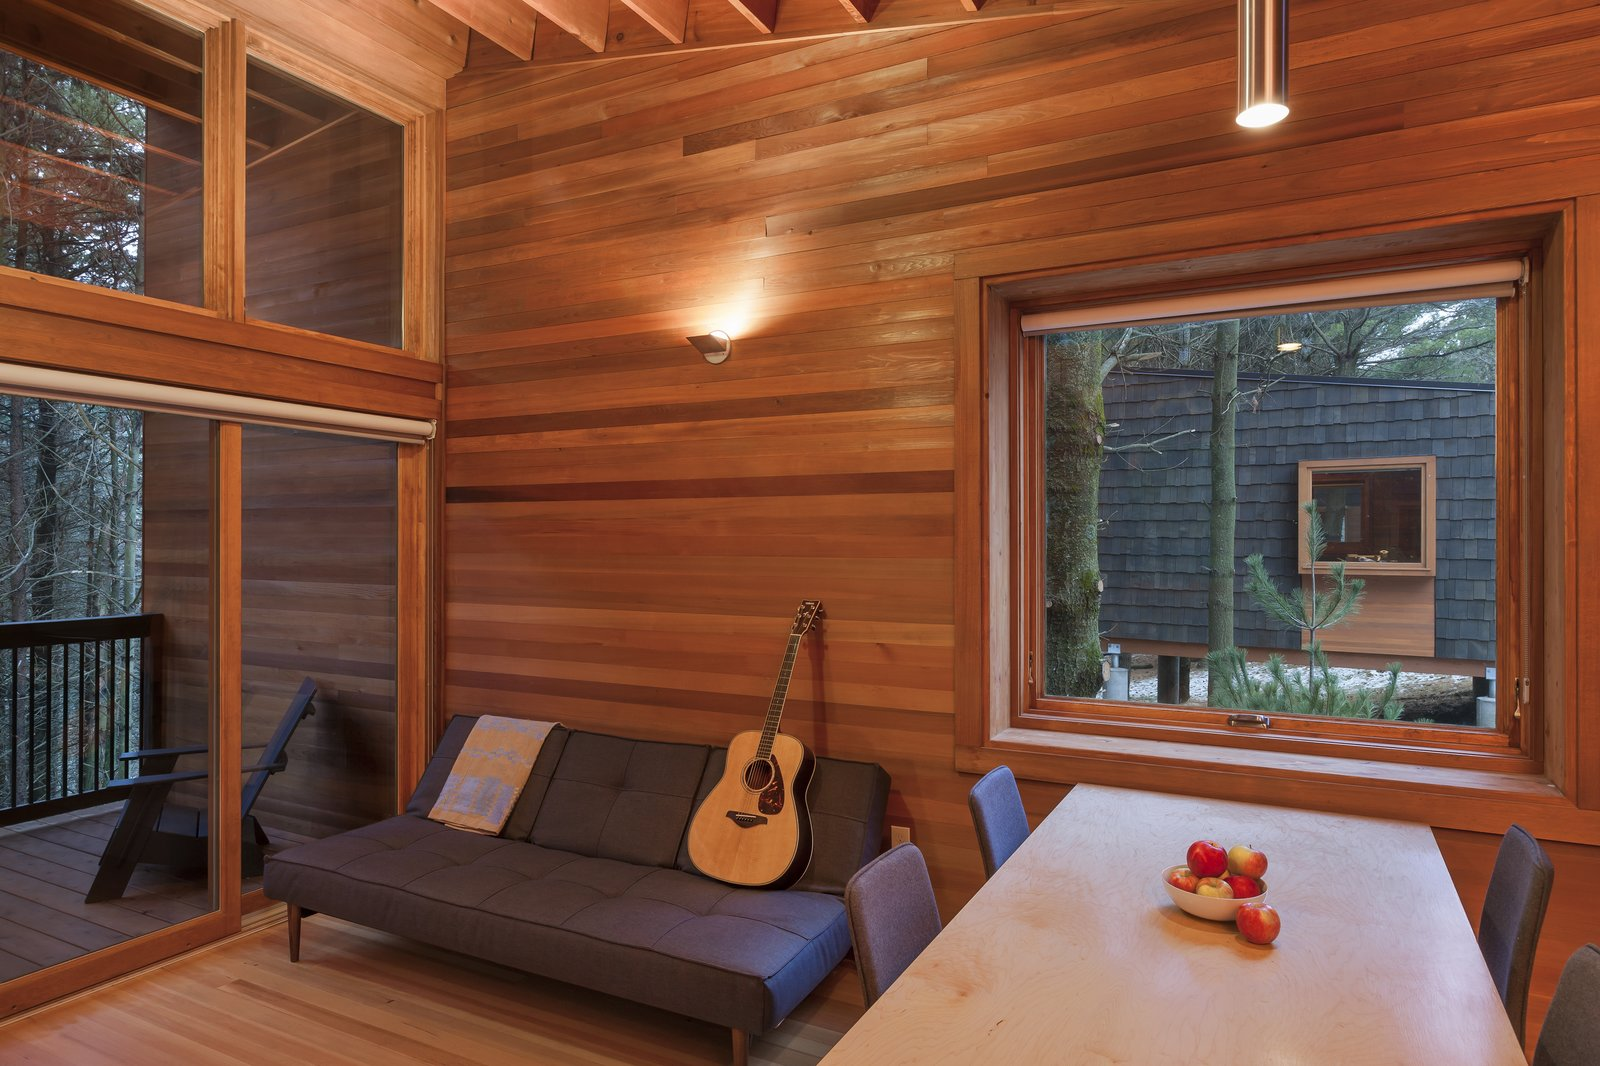 Dining Room, Chair, Pendant Lighting, Medium Hardwood Floor, Table, and Wall Lighting  Photo 8 of 8 in Camp in Style at This Trio of Cedar-Clad Cabins in Minnesota